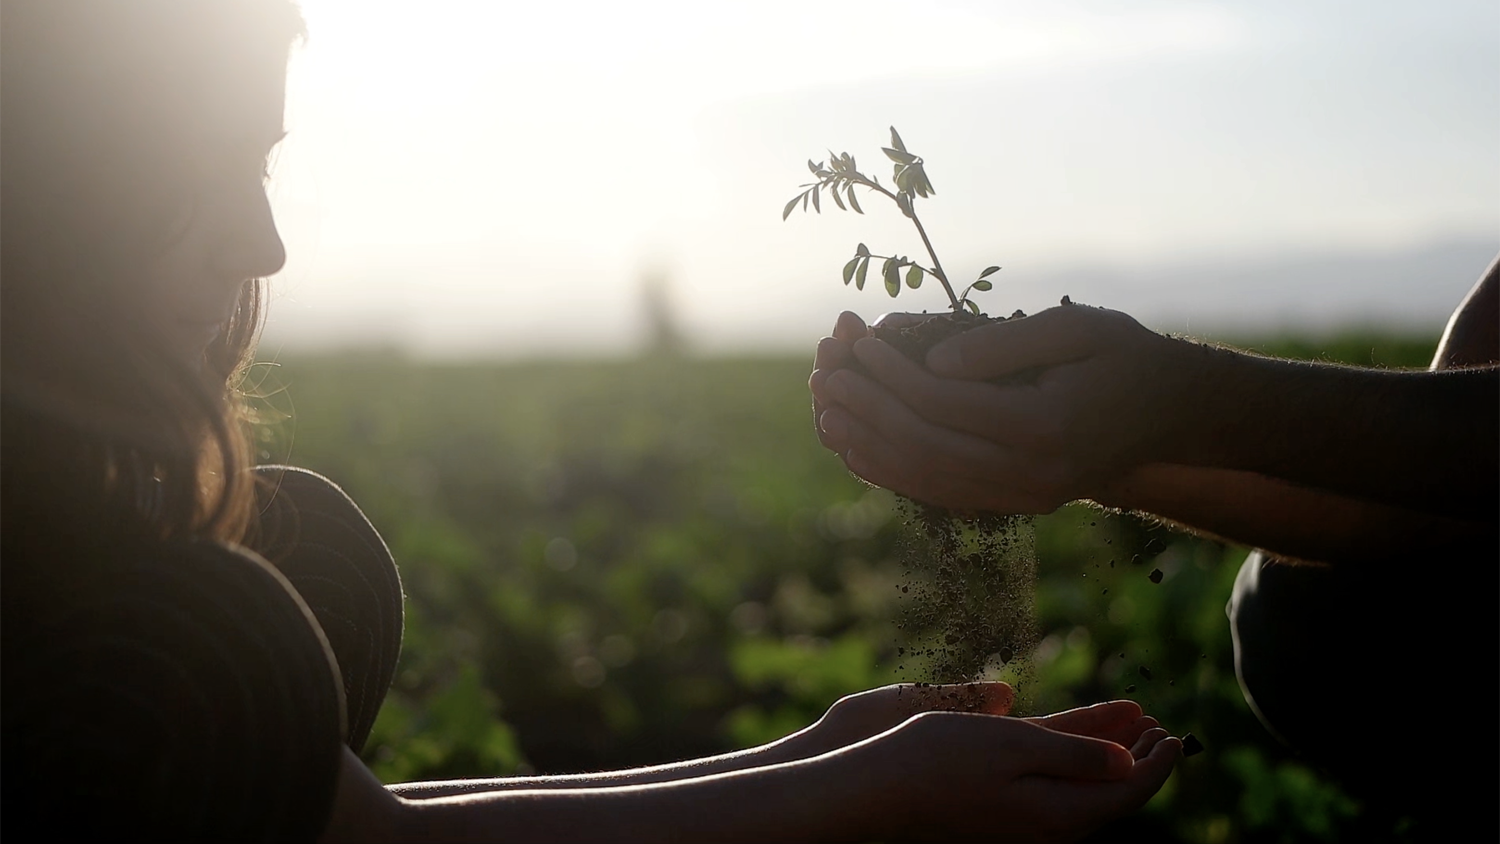 A young girl standing in a farm field with cupped hands extended to receive a plant seedling and soil from an adult.